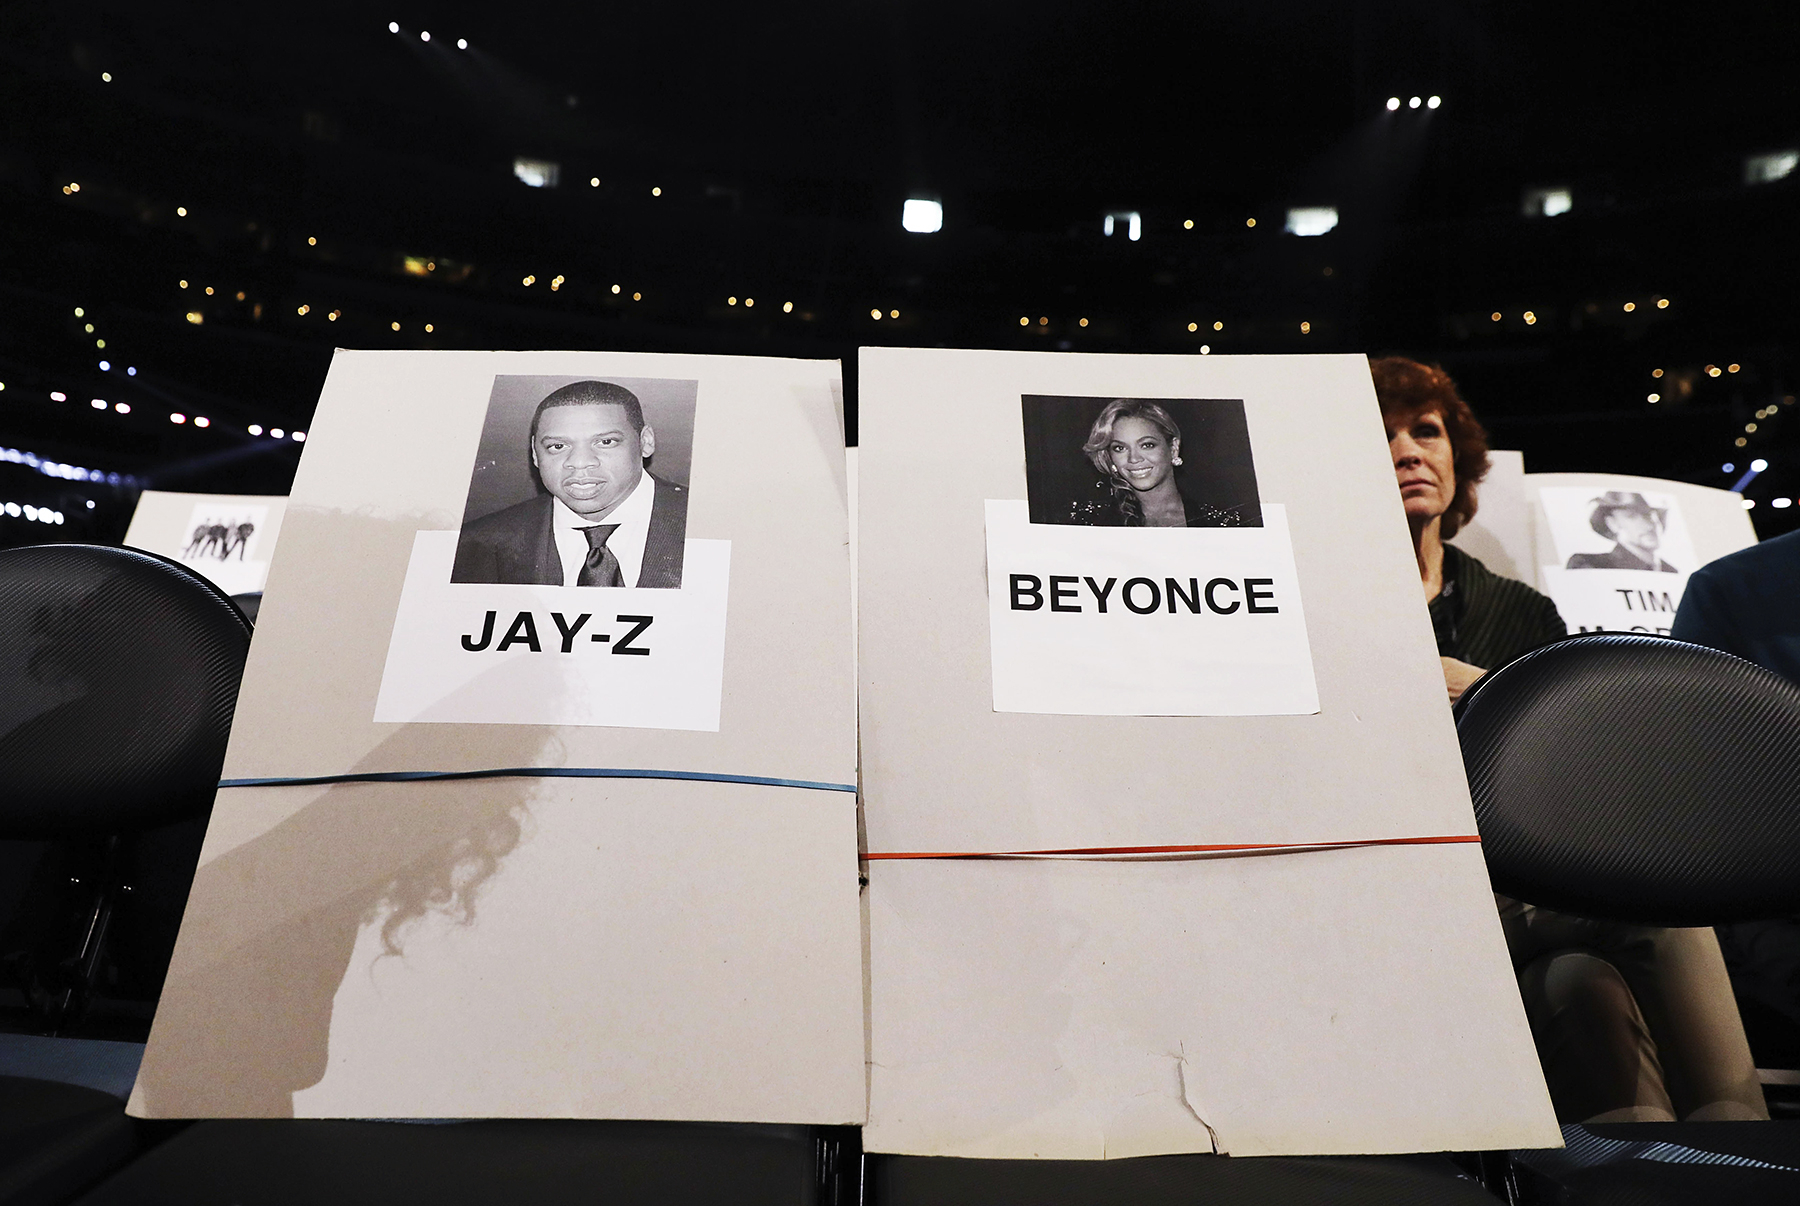 Jay Z Beyonce Grammy Awards seating chart